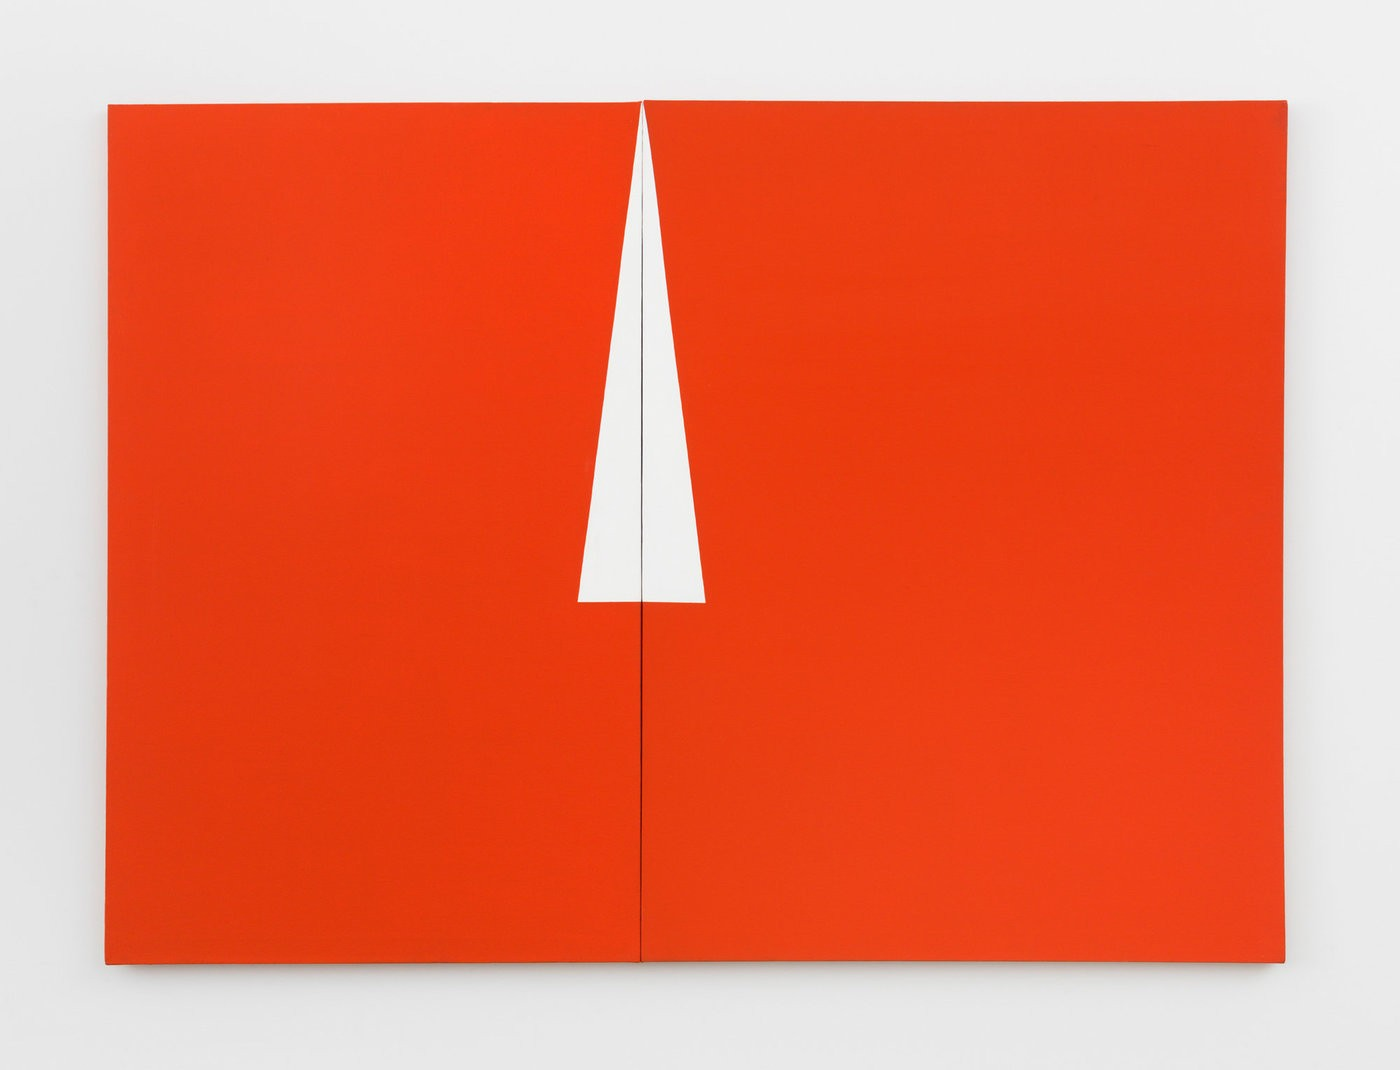 Medium 2017 carmen herrera red with white triangle 1961 300dpi